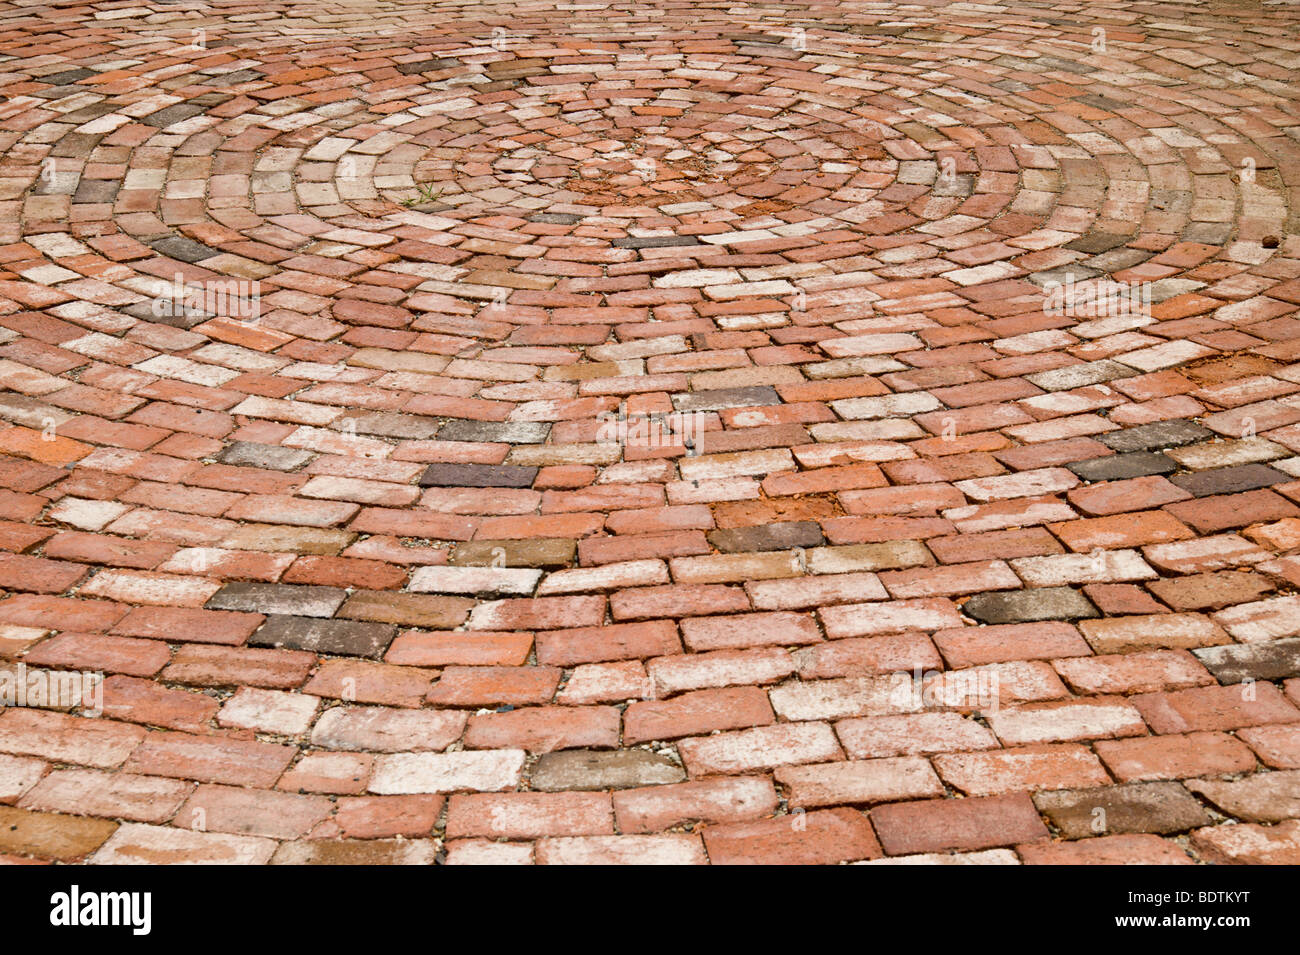 A swirling pattern of bricks found in Carrizozo, New Mexico. - Stock Image